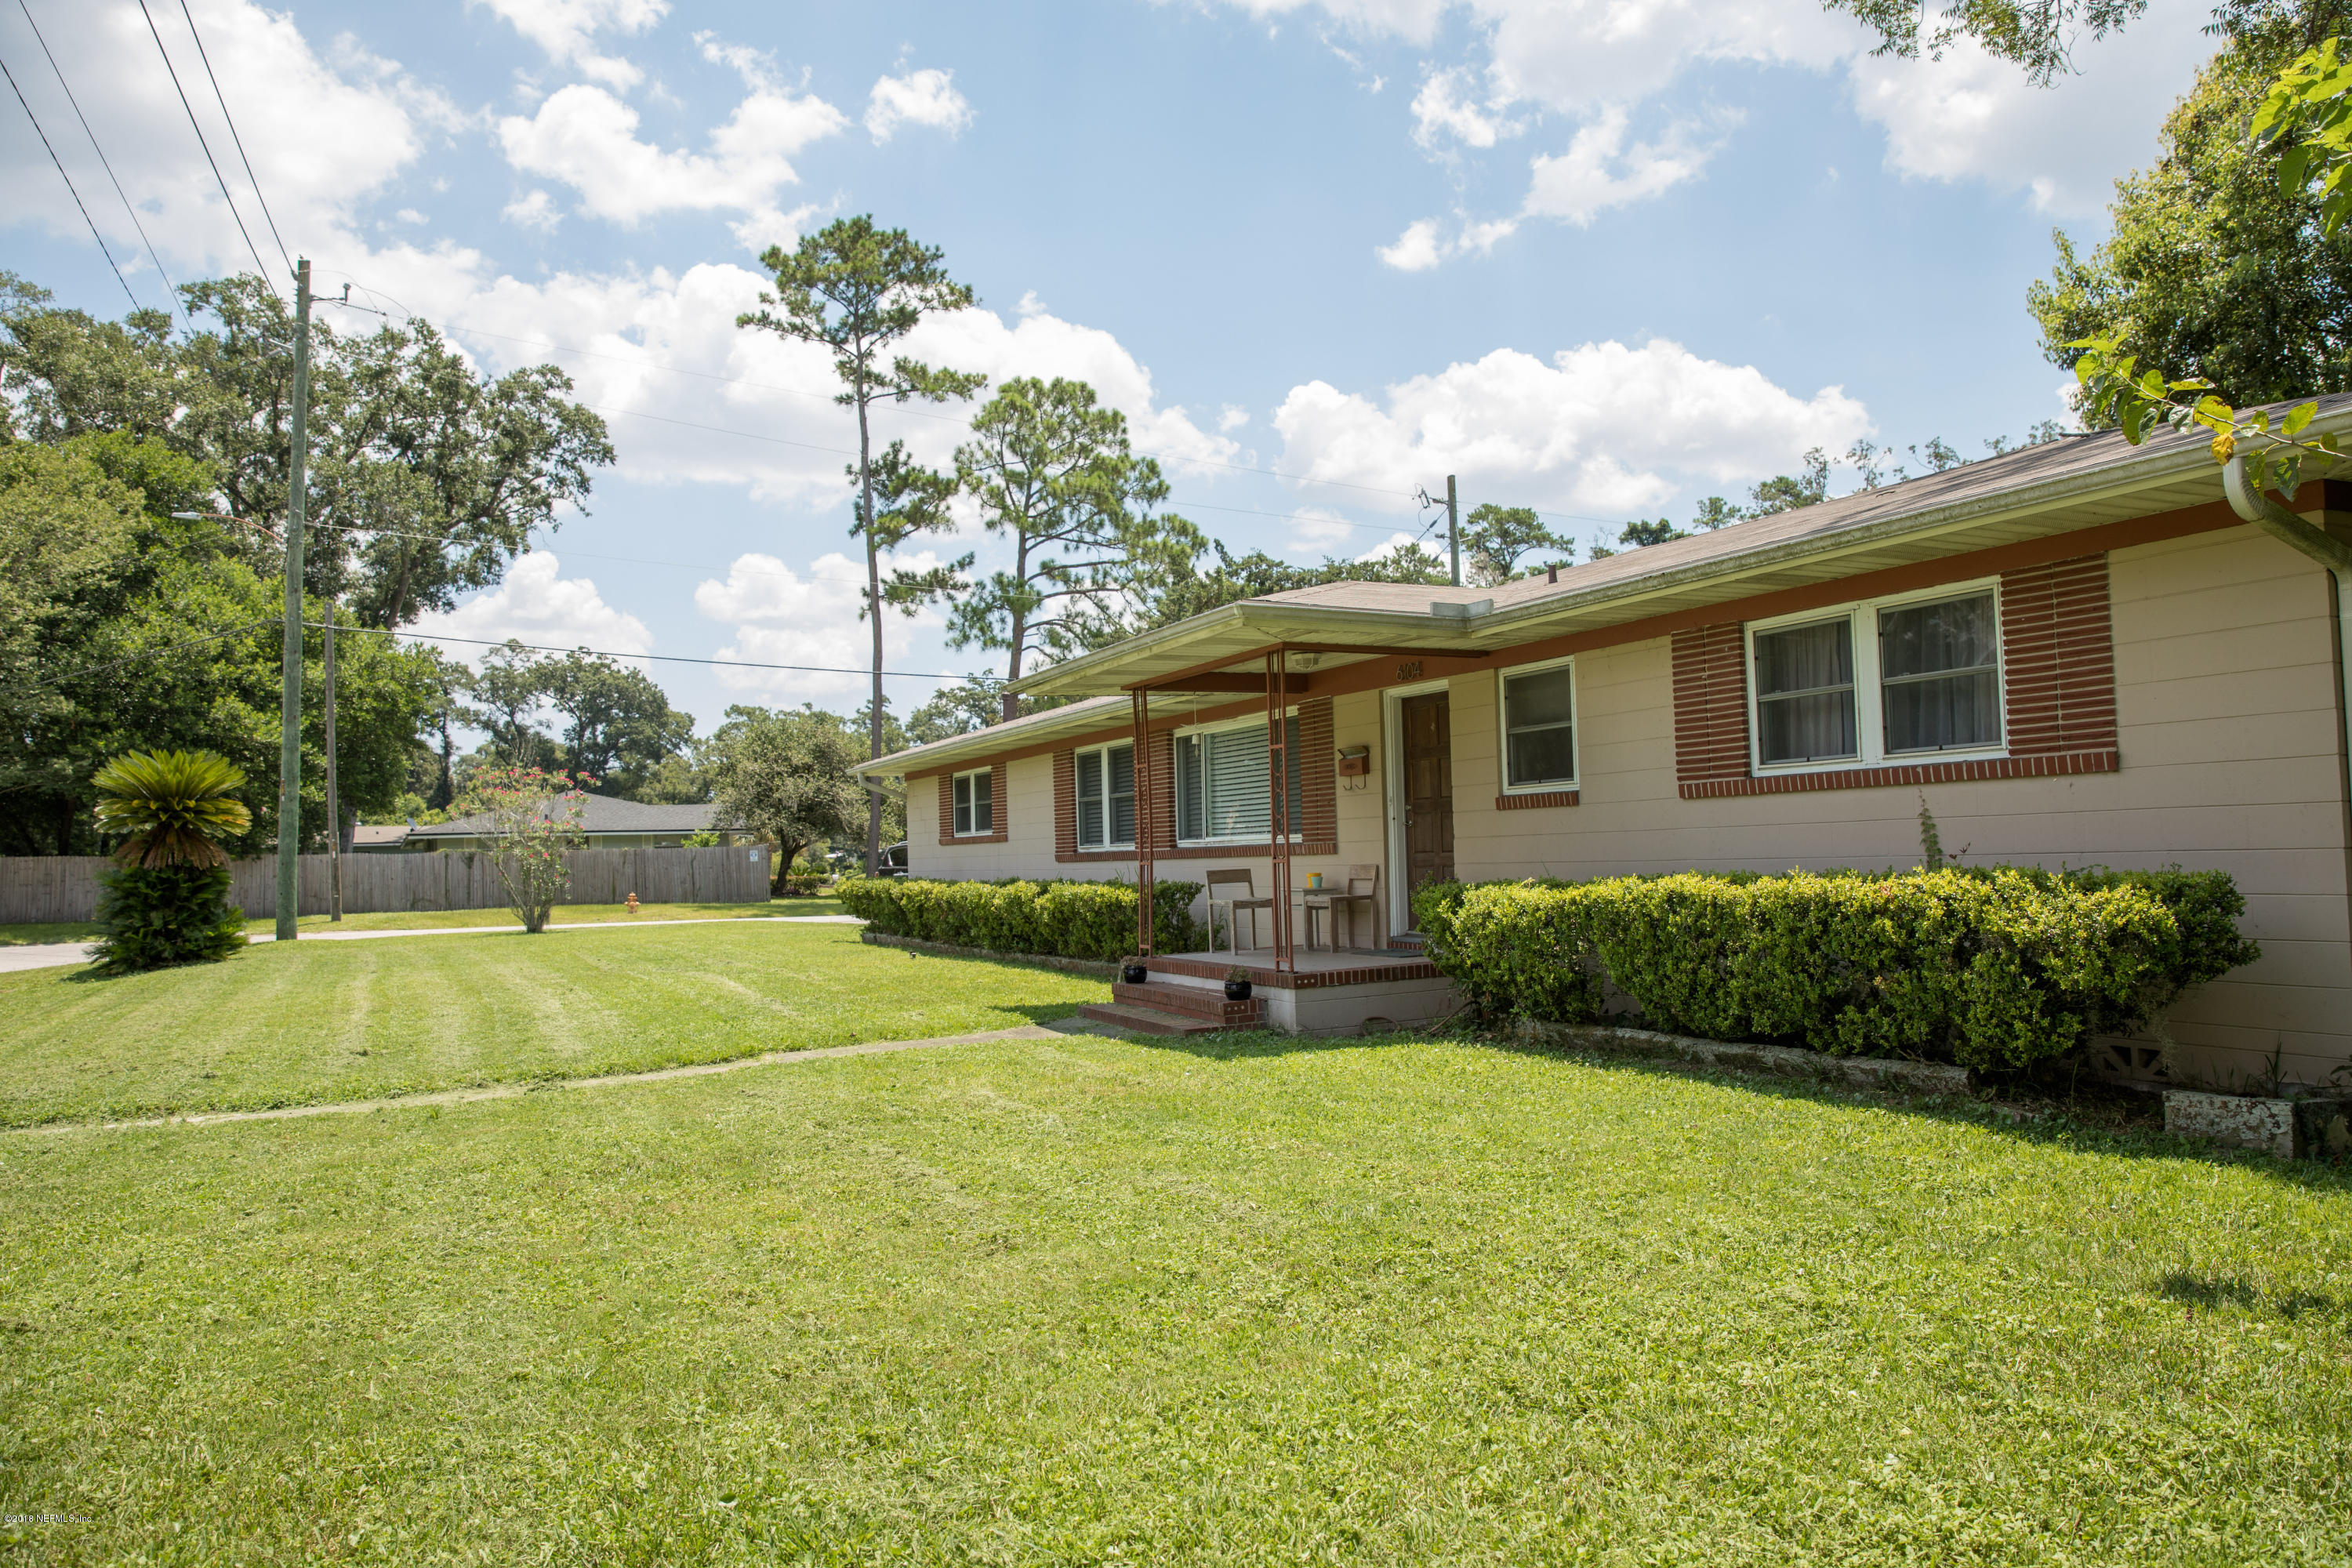 6104 BARTRAM, JACKSONVILLE, FLORIDA 32216, 2 Bedrooms Bedrooms, ,2 BathroomsBathrooms,Residential - single family,For sale,BARTRAM,947373